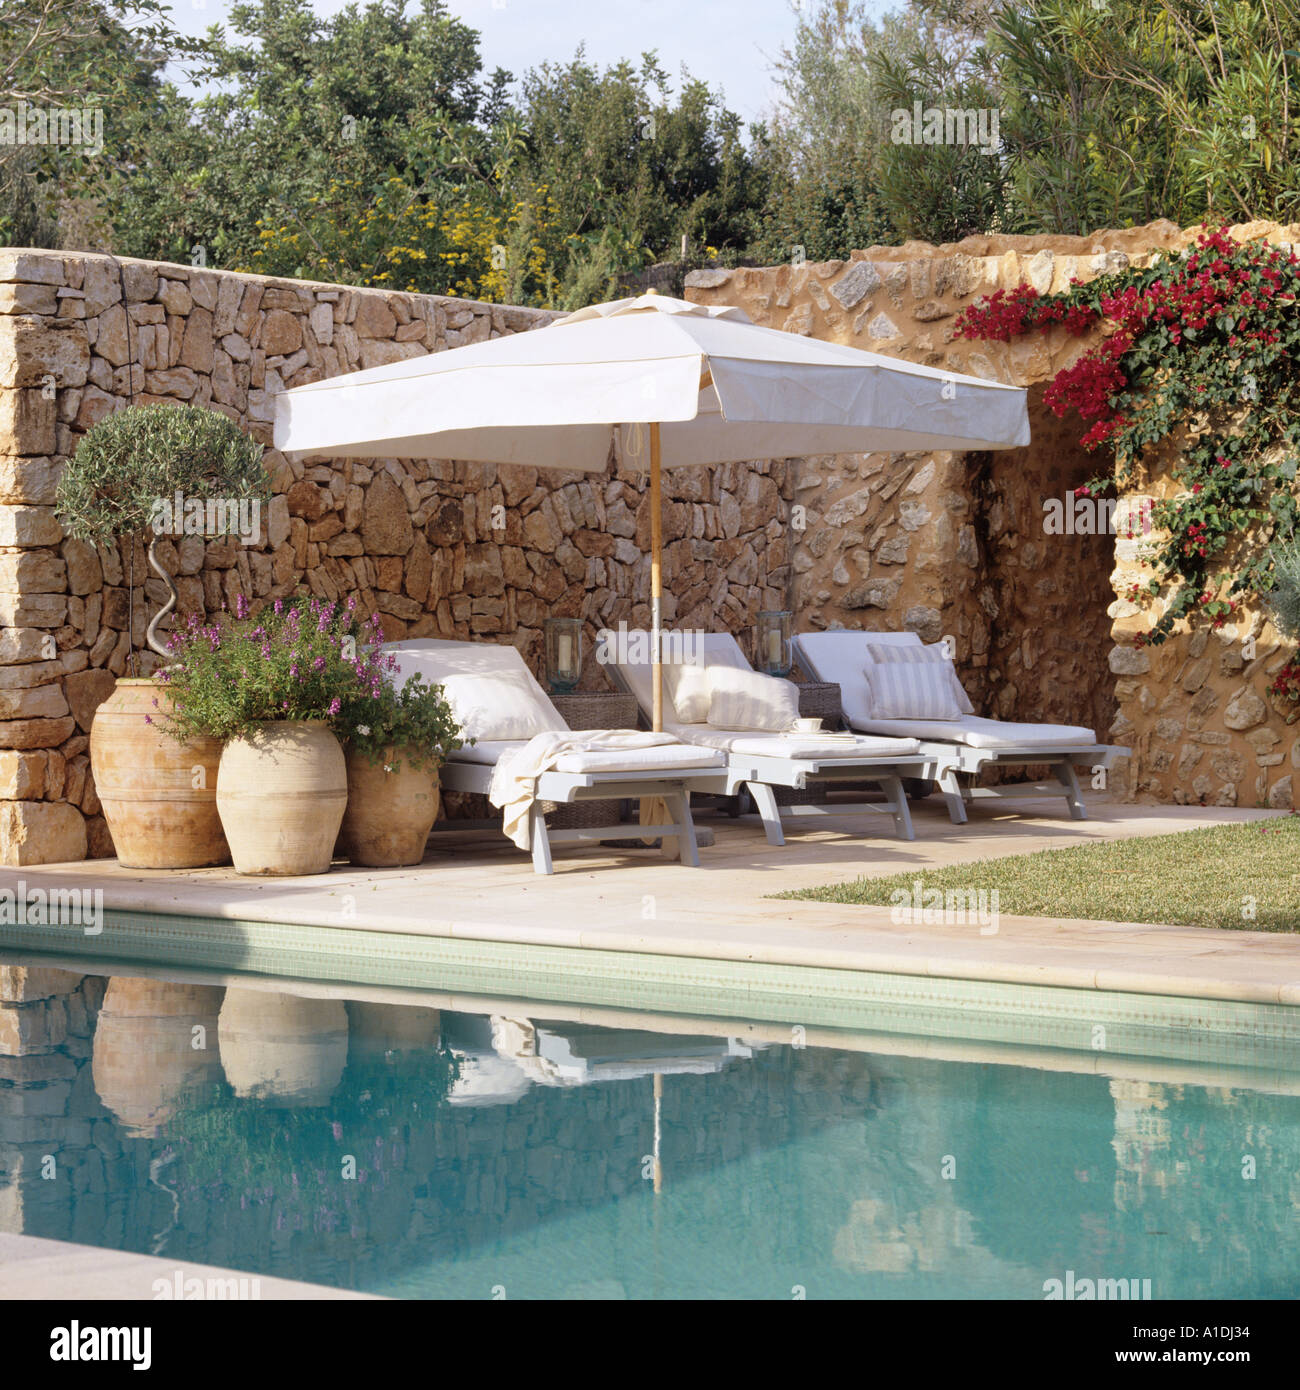 Sun loungers by swimming pool - Stock Image